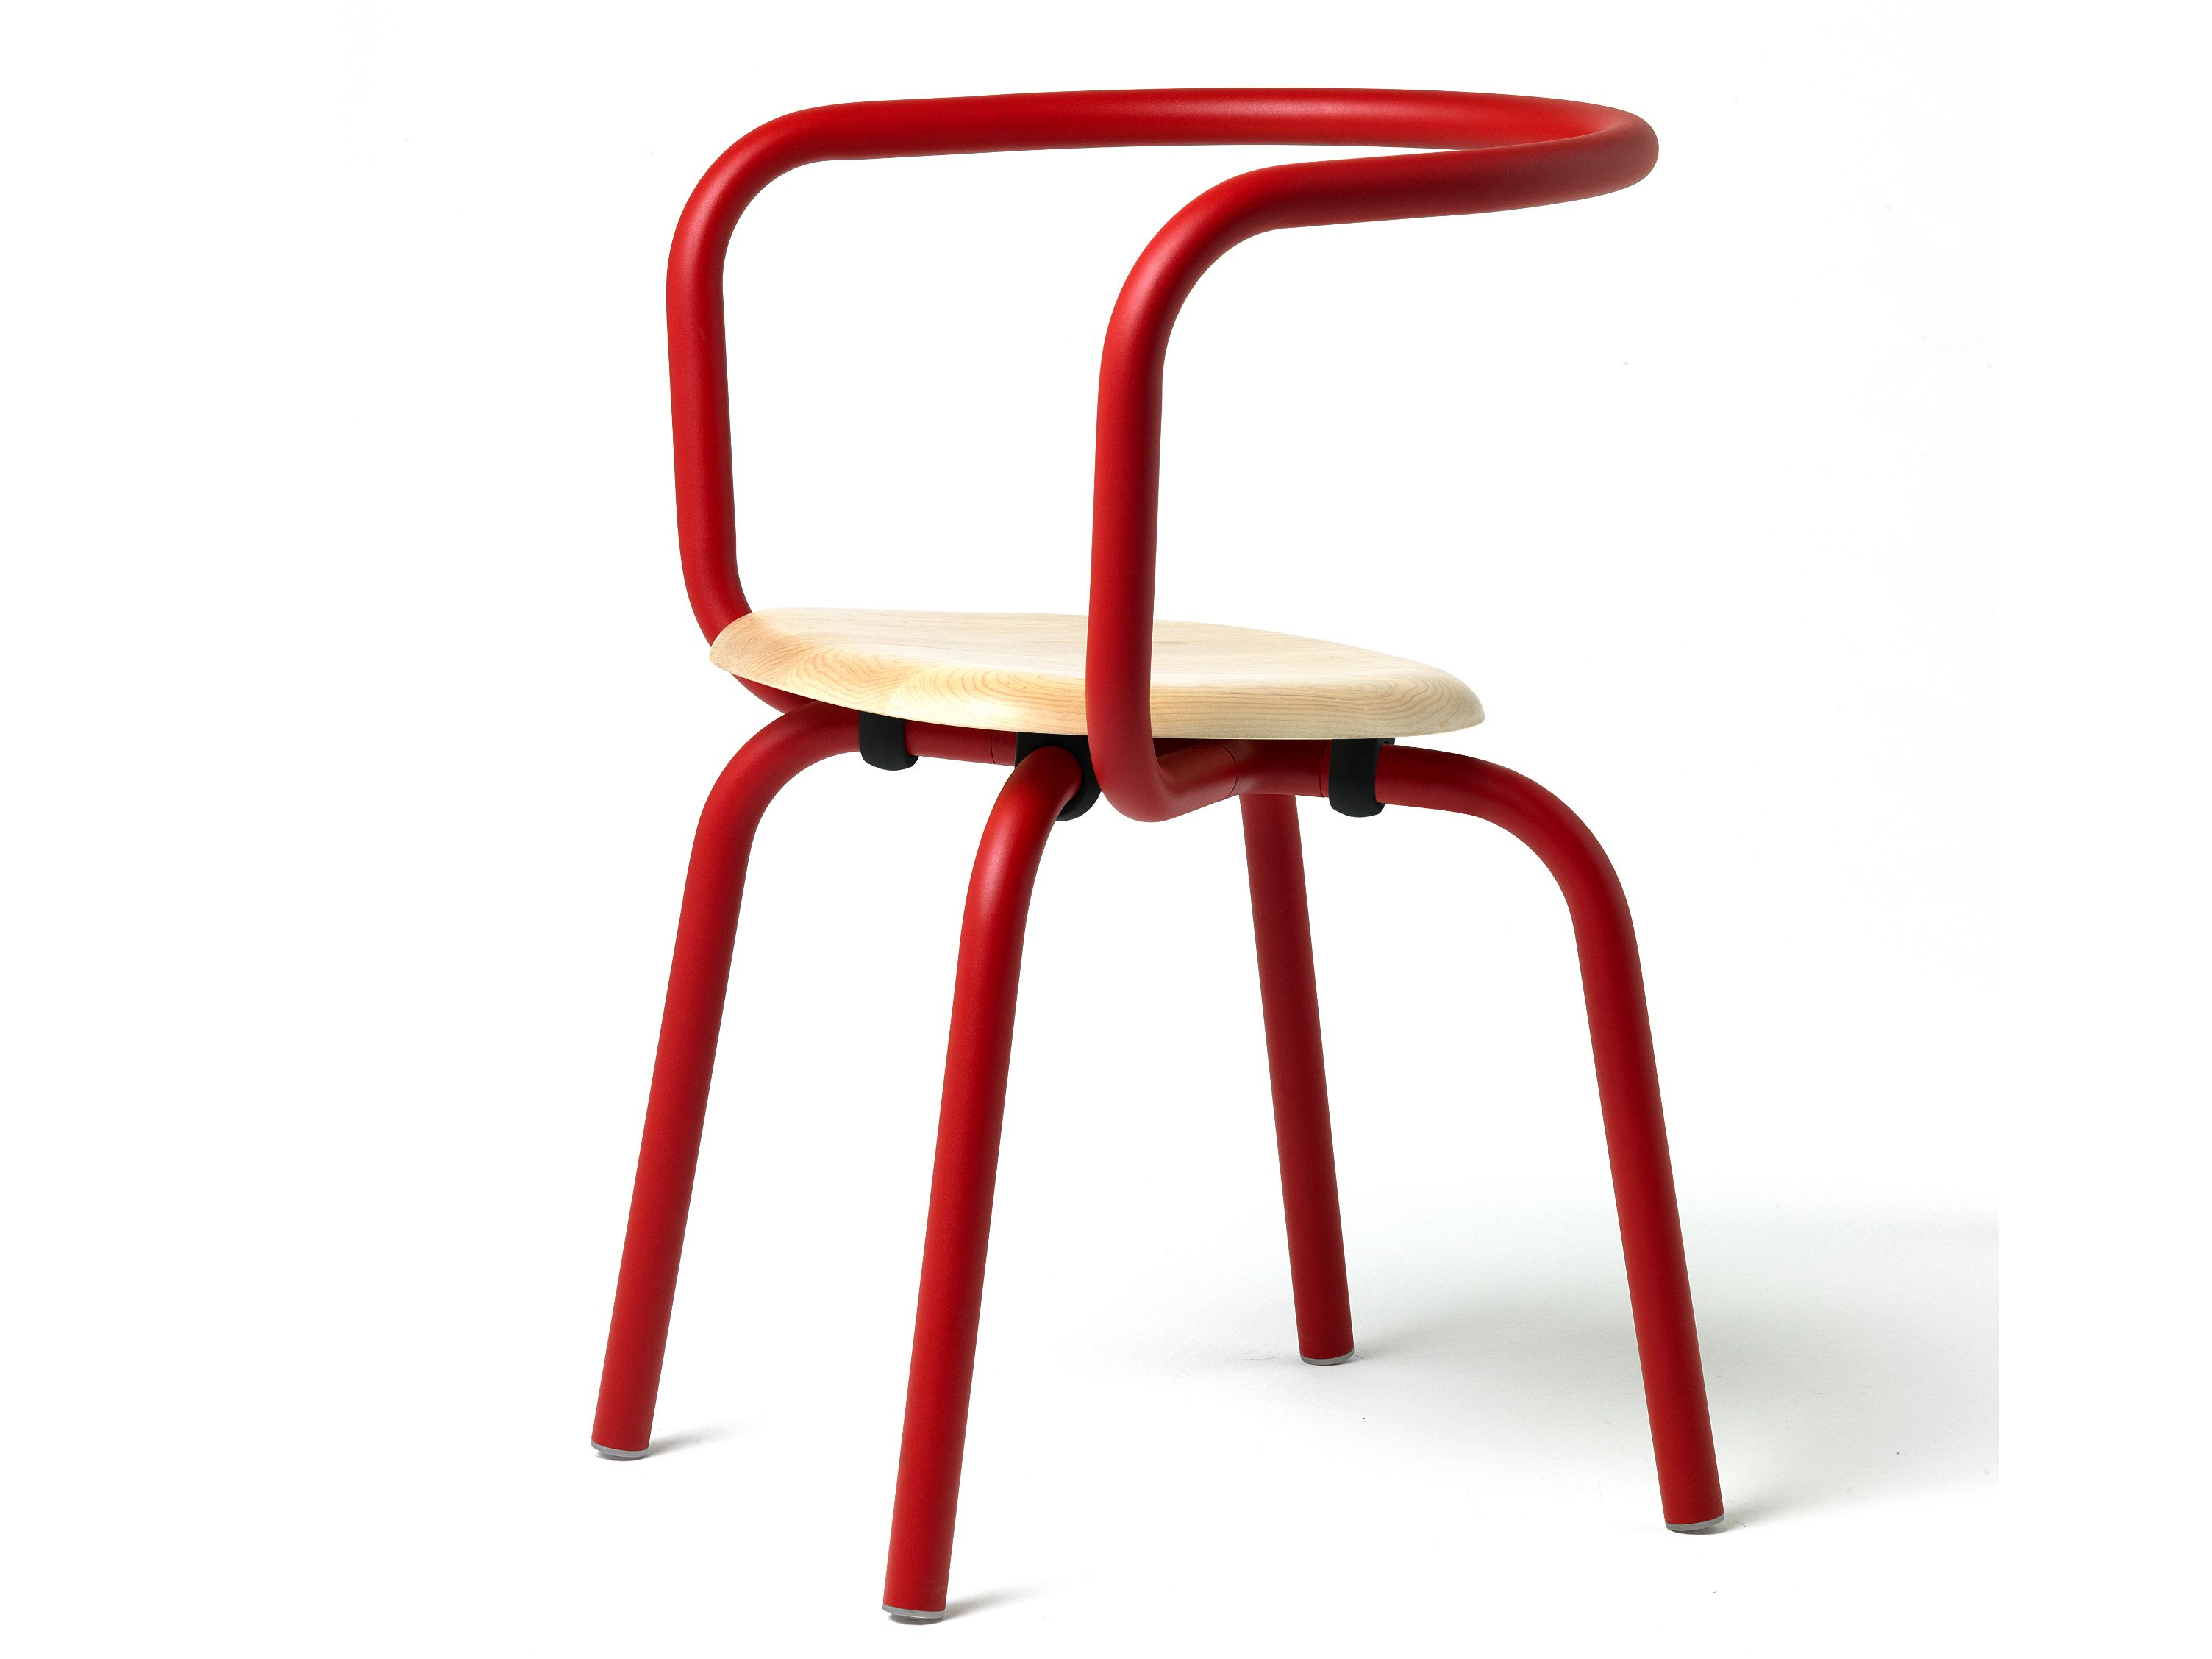 Aluminium and wood #chair Parrish Collection by Emeco | #design Konstantin Grcic